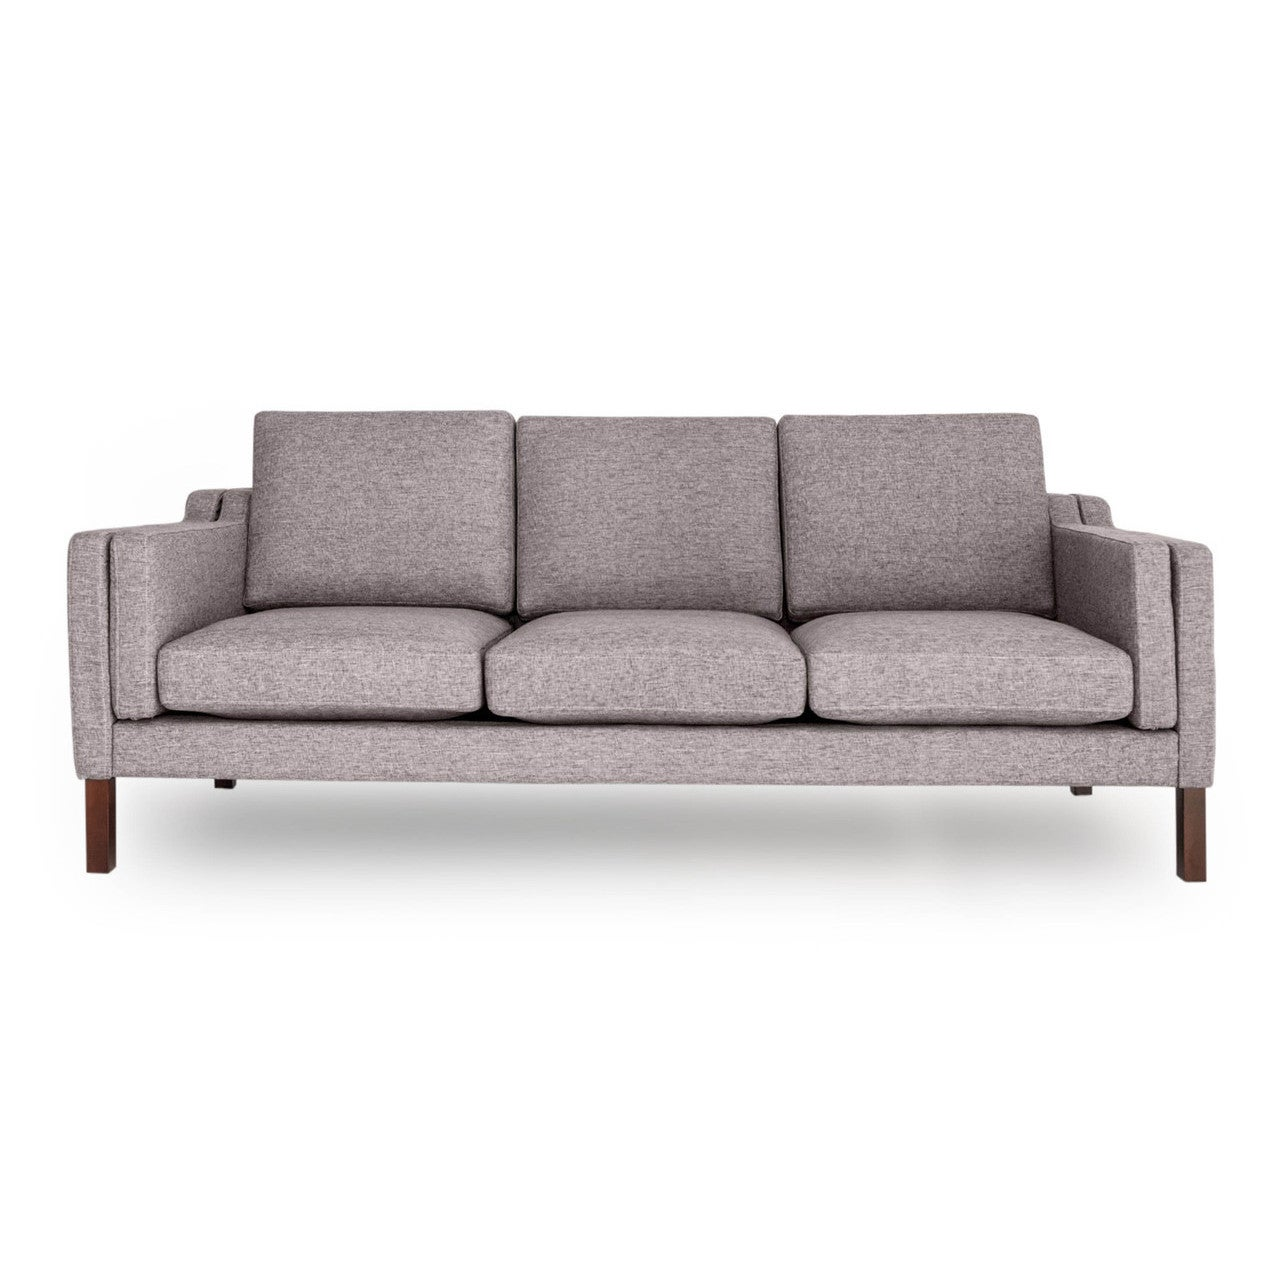 Shop Kardiel Monroe Mid Century Modern Premium Fabric 3 Seat Sofa   Free  Shipping Today   Overstock.com   12816613